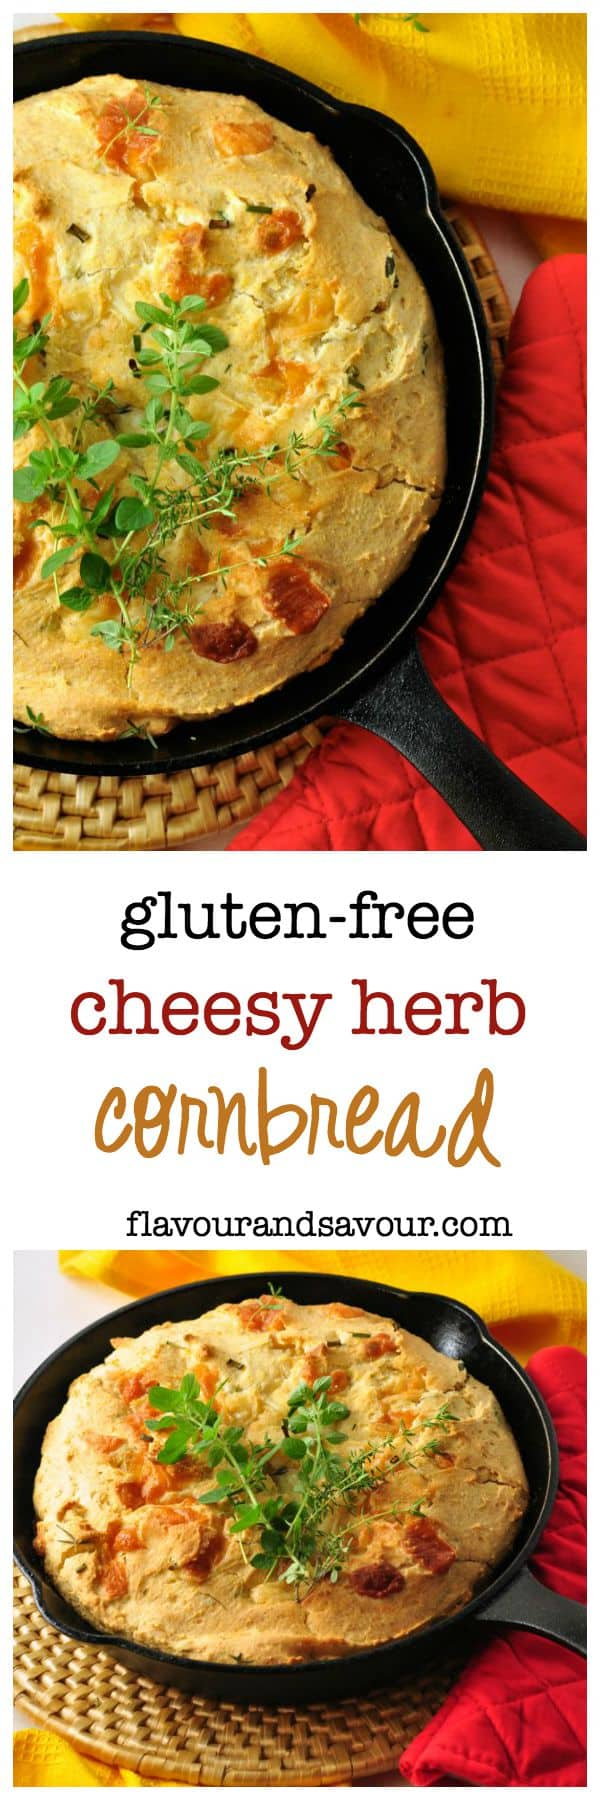 Gluten-free Cheesy Herb Cornbread. Easy to adapt with your favourite herbs and cheese. Bake in a cast iron skillet!|www.flavourandsavour.com